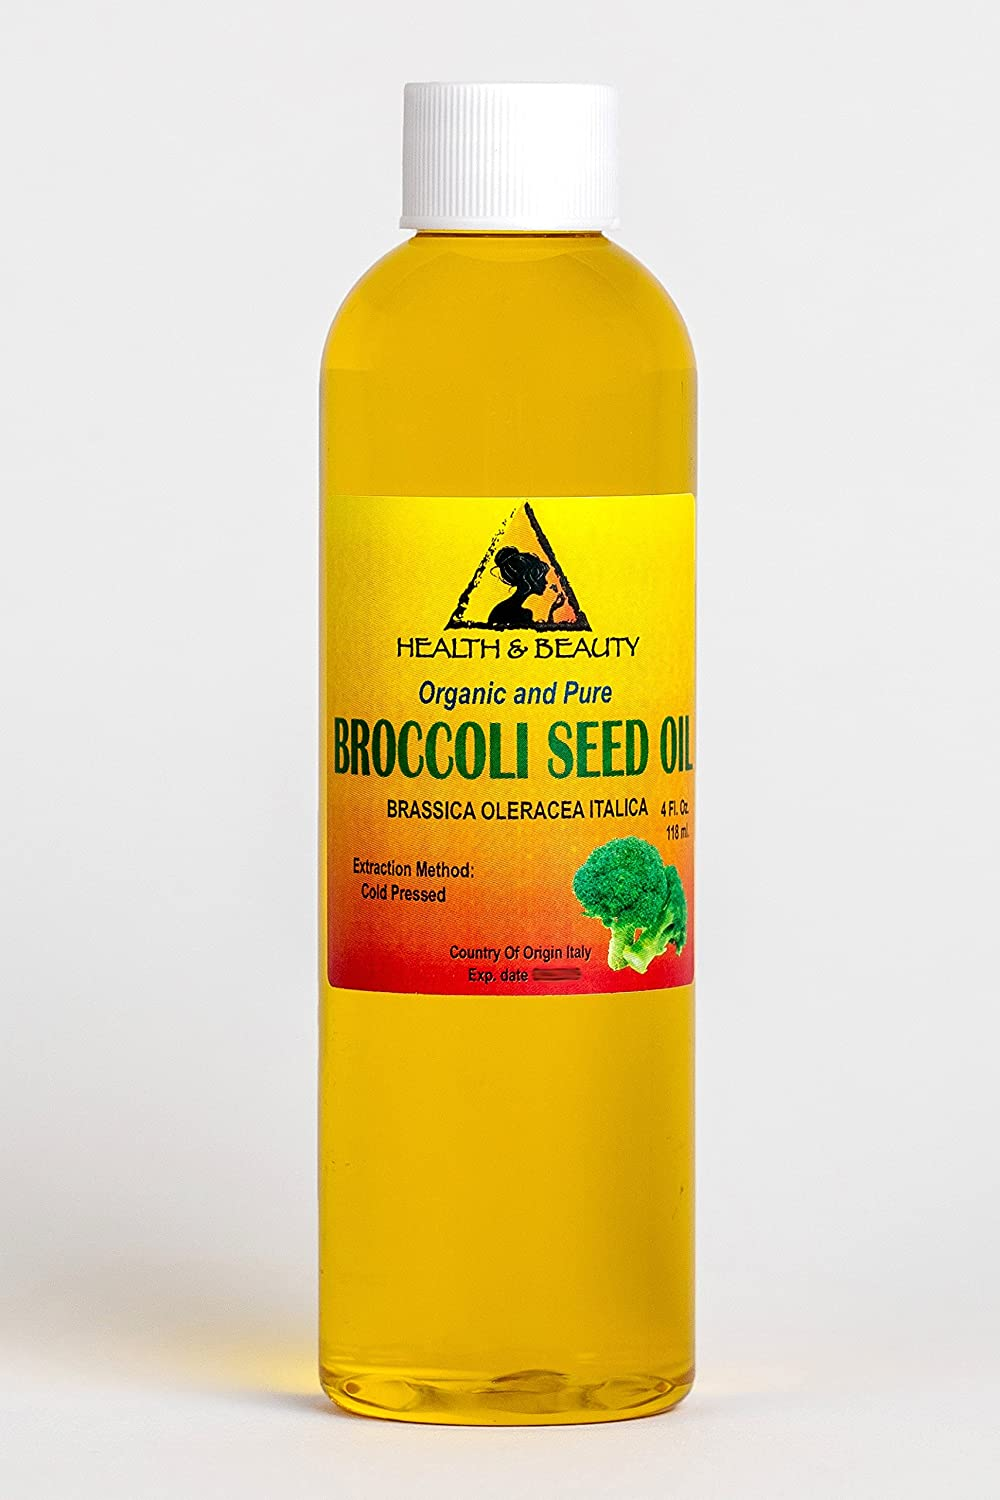 Broccoli Seed Oil Organic Carrier Cold Pressed Anti-Aging Natural Fresh 100% Pure 4 oz, 118 ml H&B OILS CENTER Co.